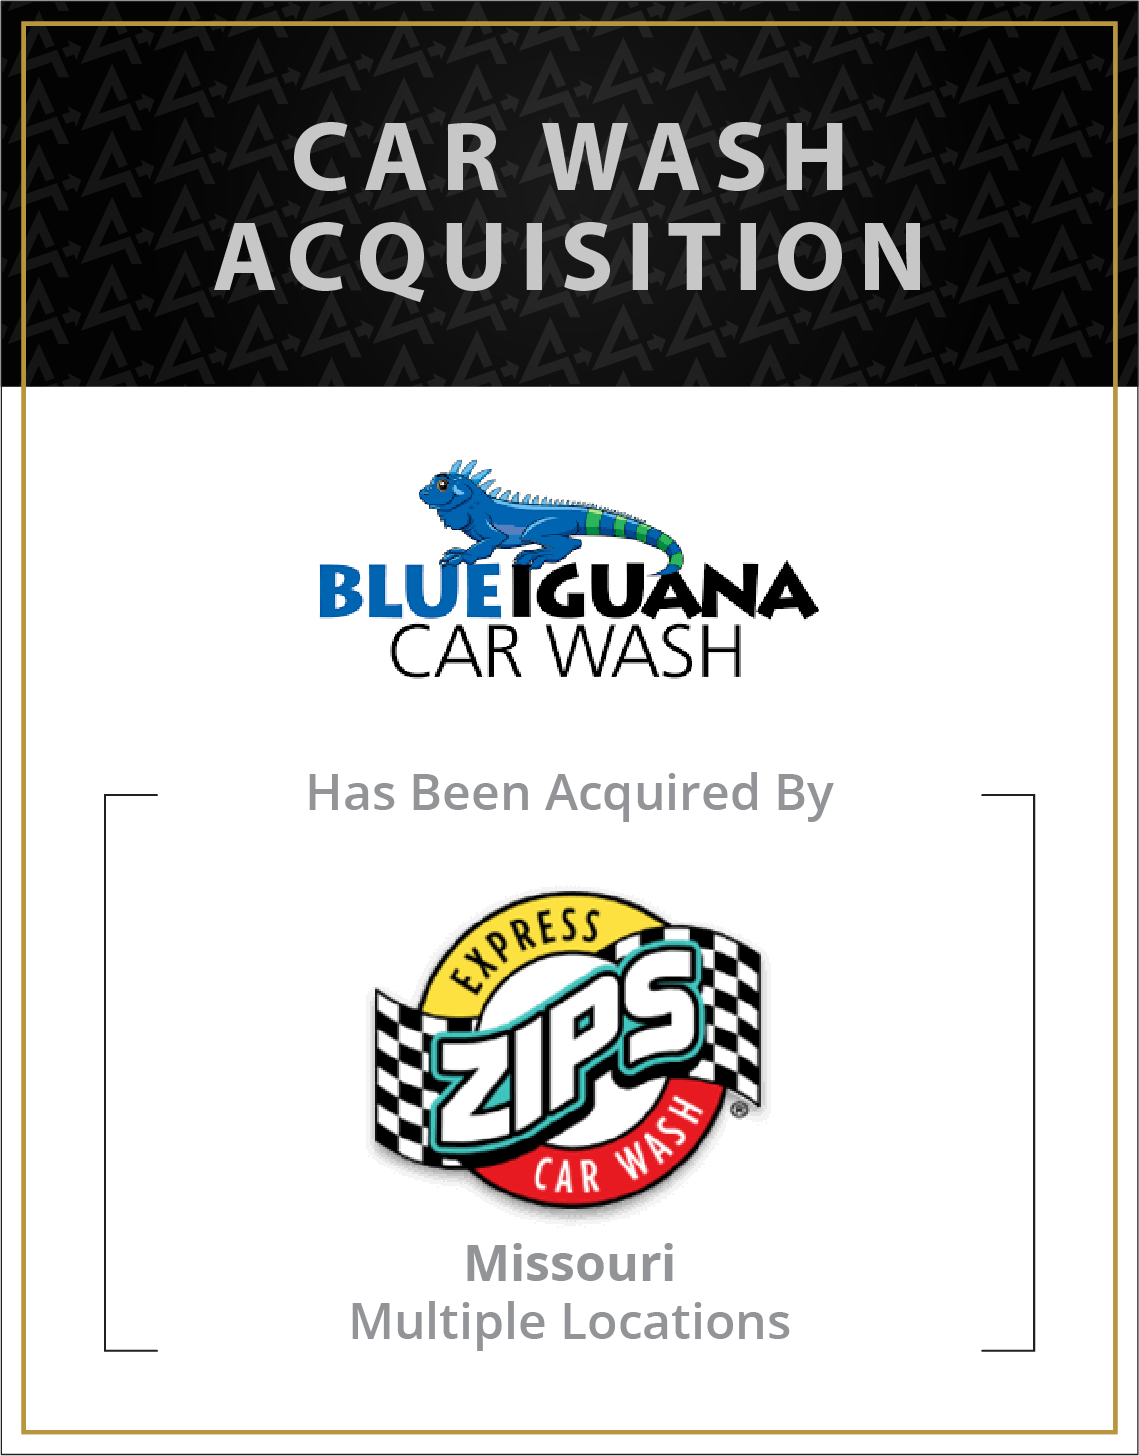 Blue Iguana Car Wash has been acquired by Zips Car Wash